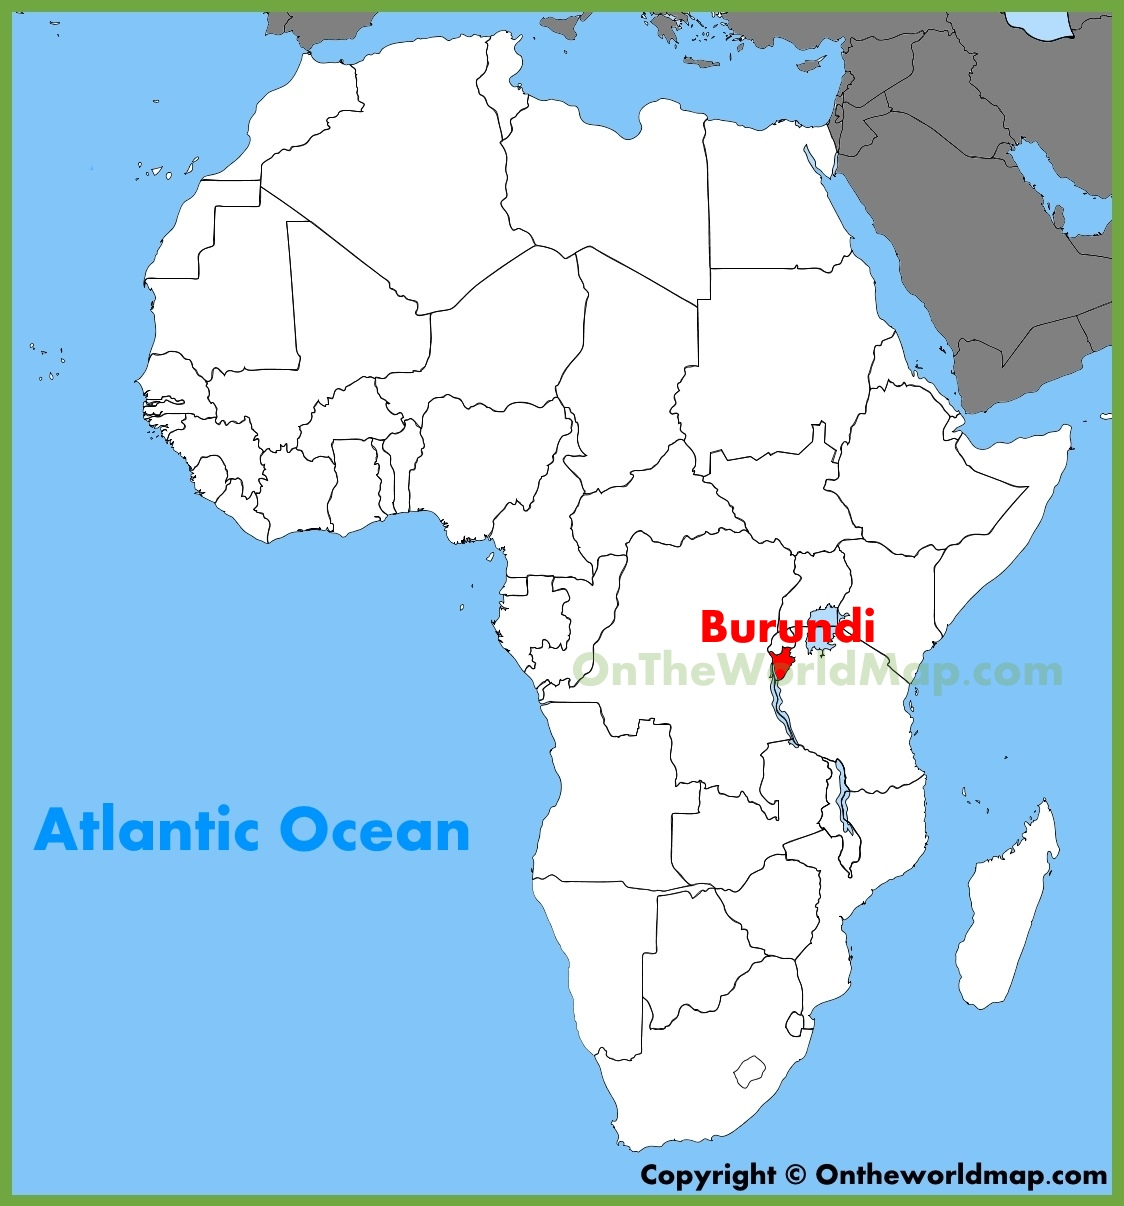 burundi - photo #42